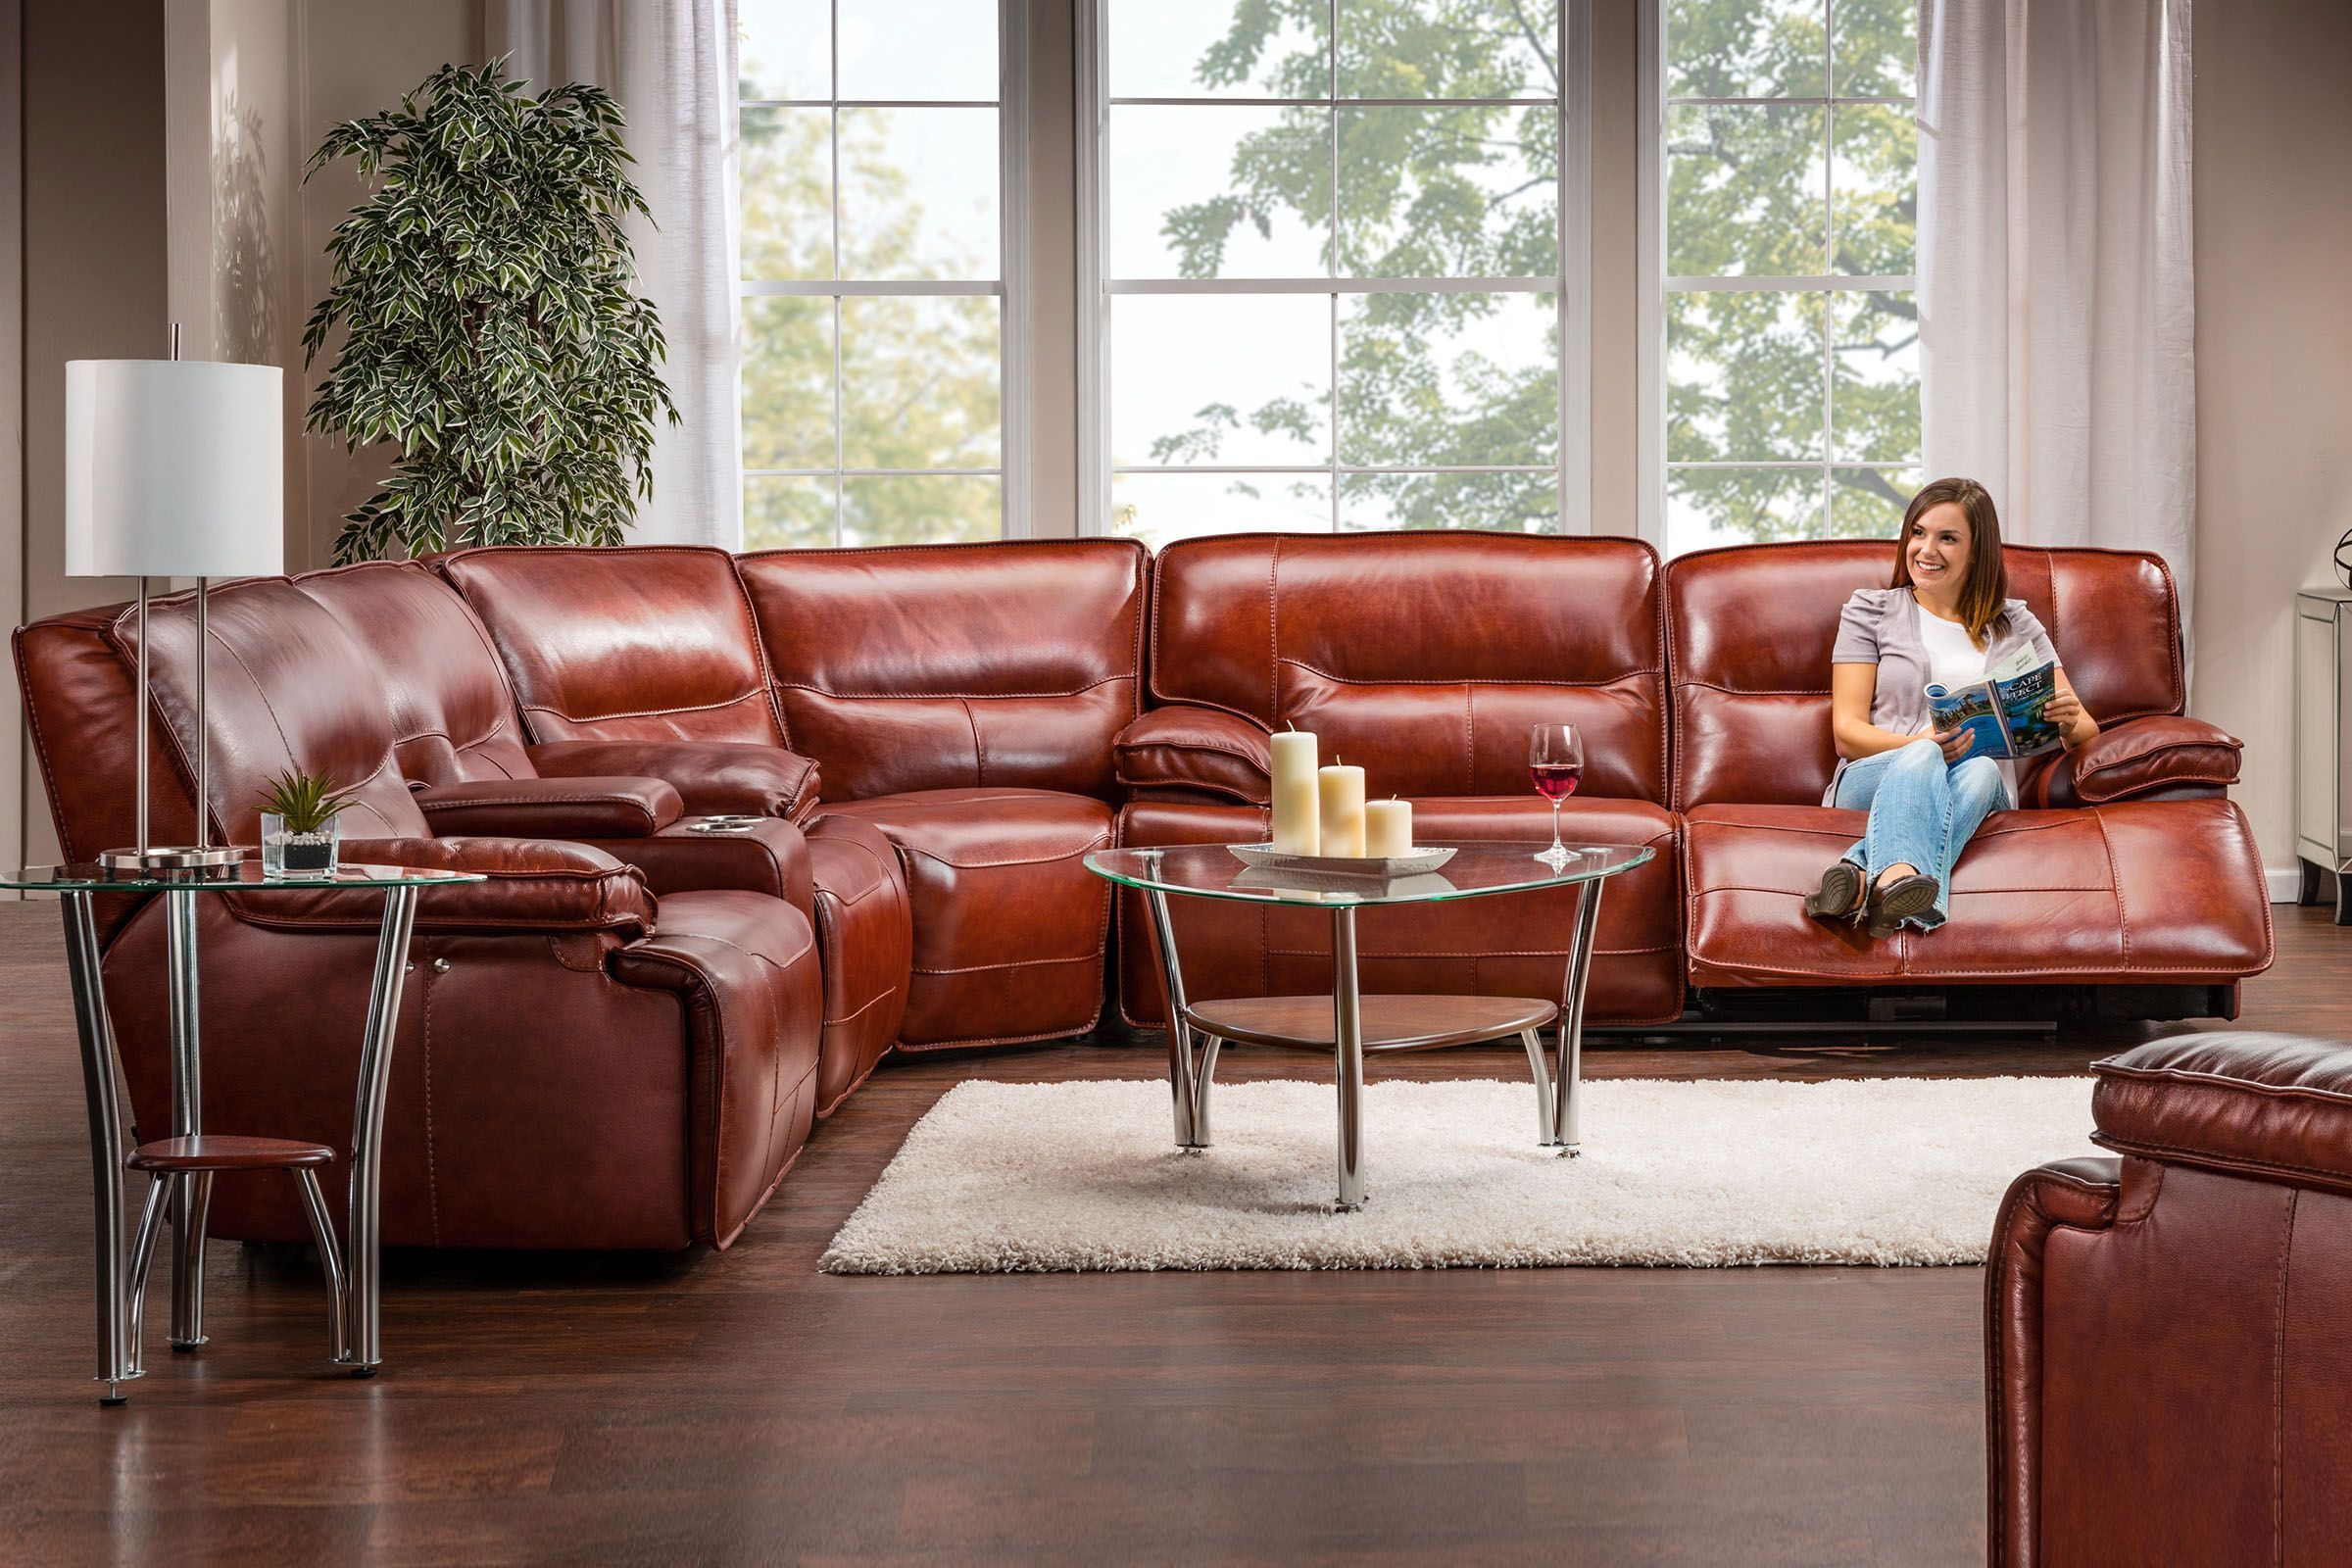 Swell Drake Leather Power Reclining Sectional In 2019 Leather Pabps2019 Chair Design Images Pabps2019Com